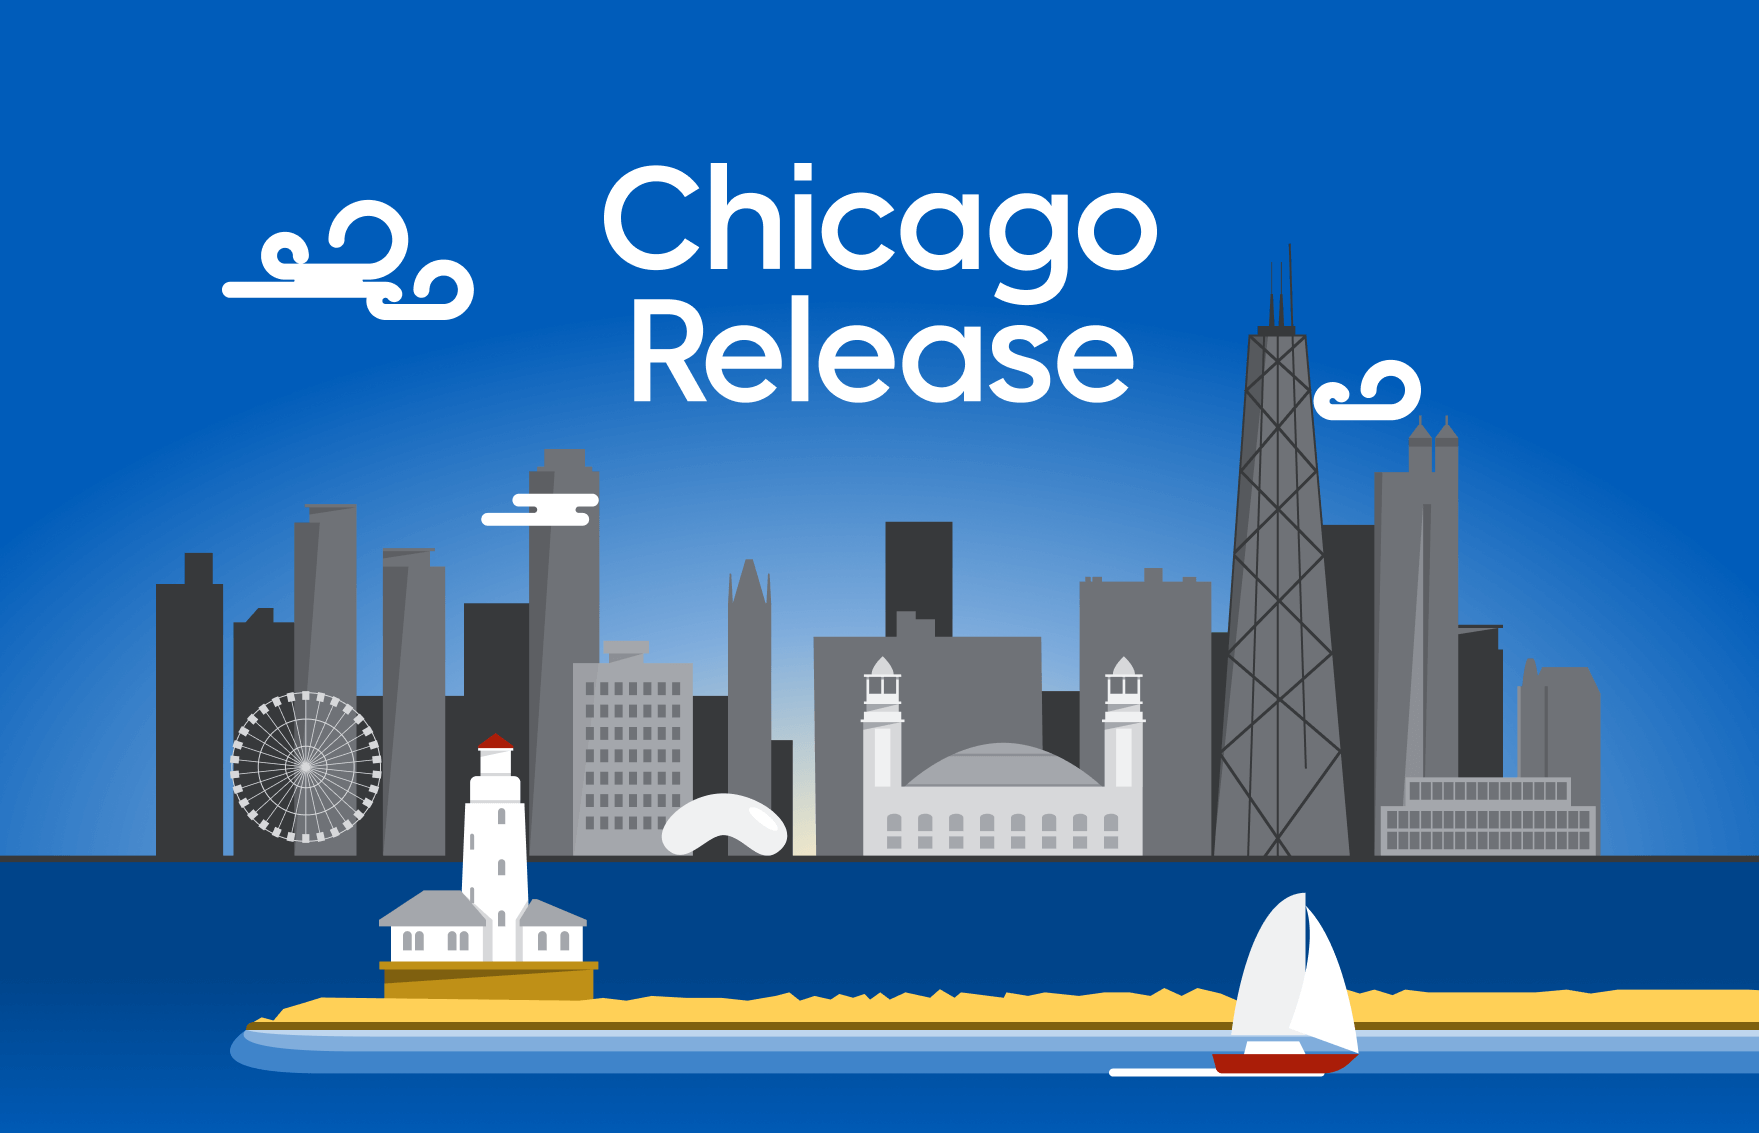 Chicago Release Demo